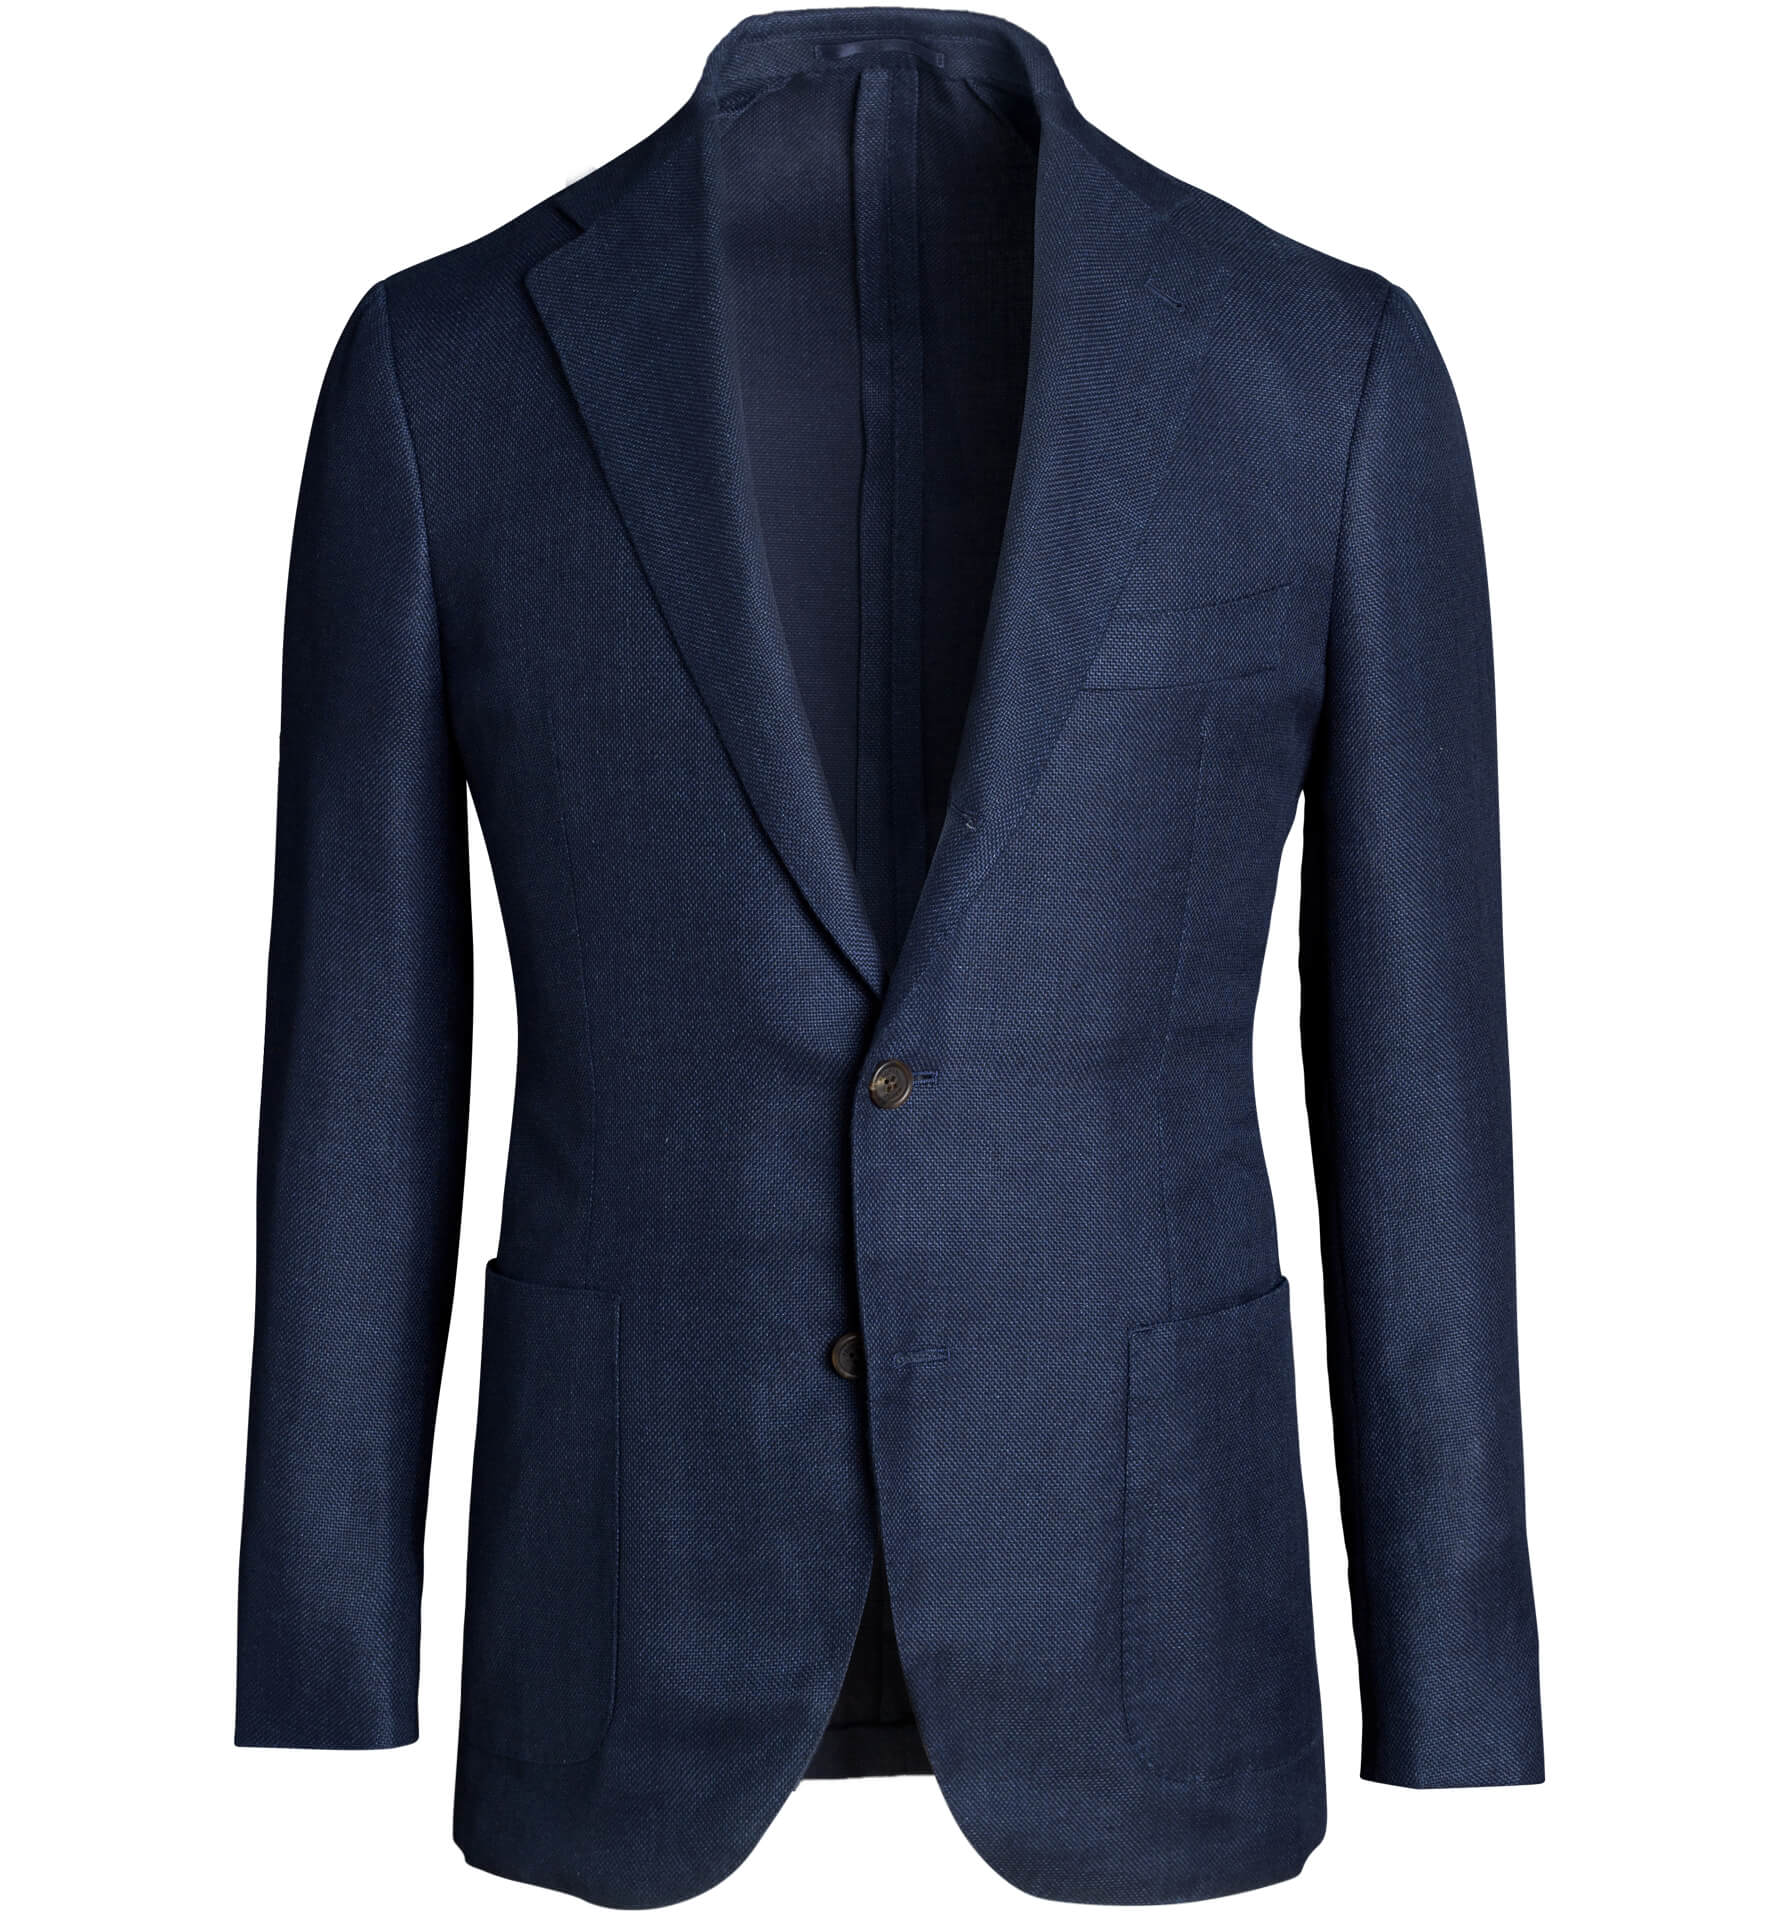 Zoom Image of Bedford Navy Wool and Linen Hopsack Jacket